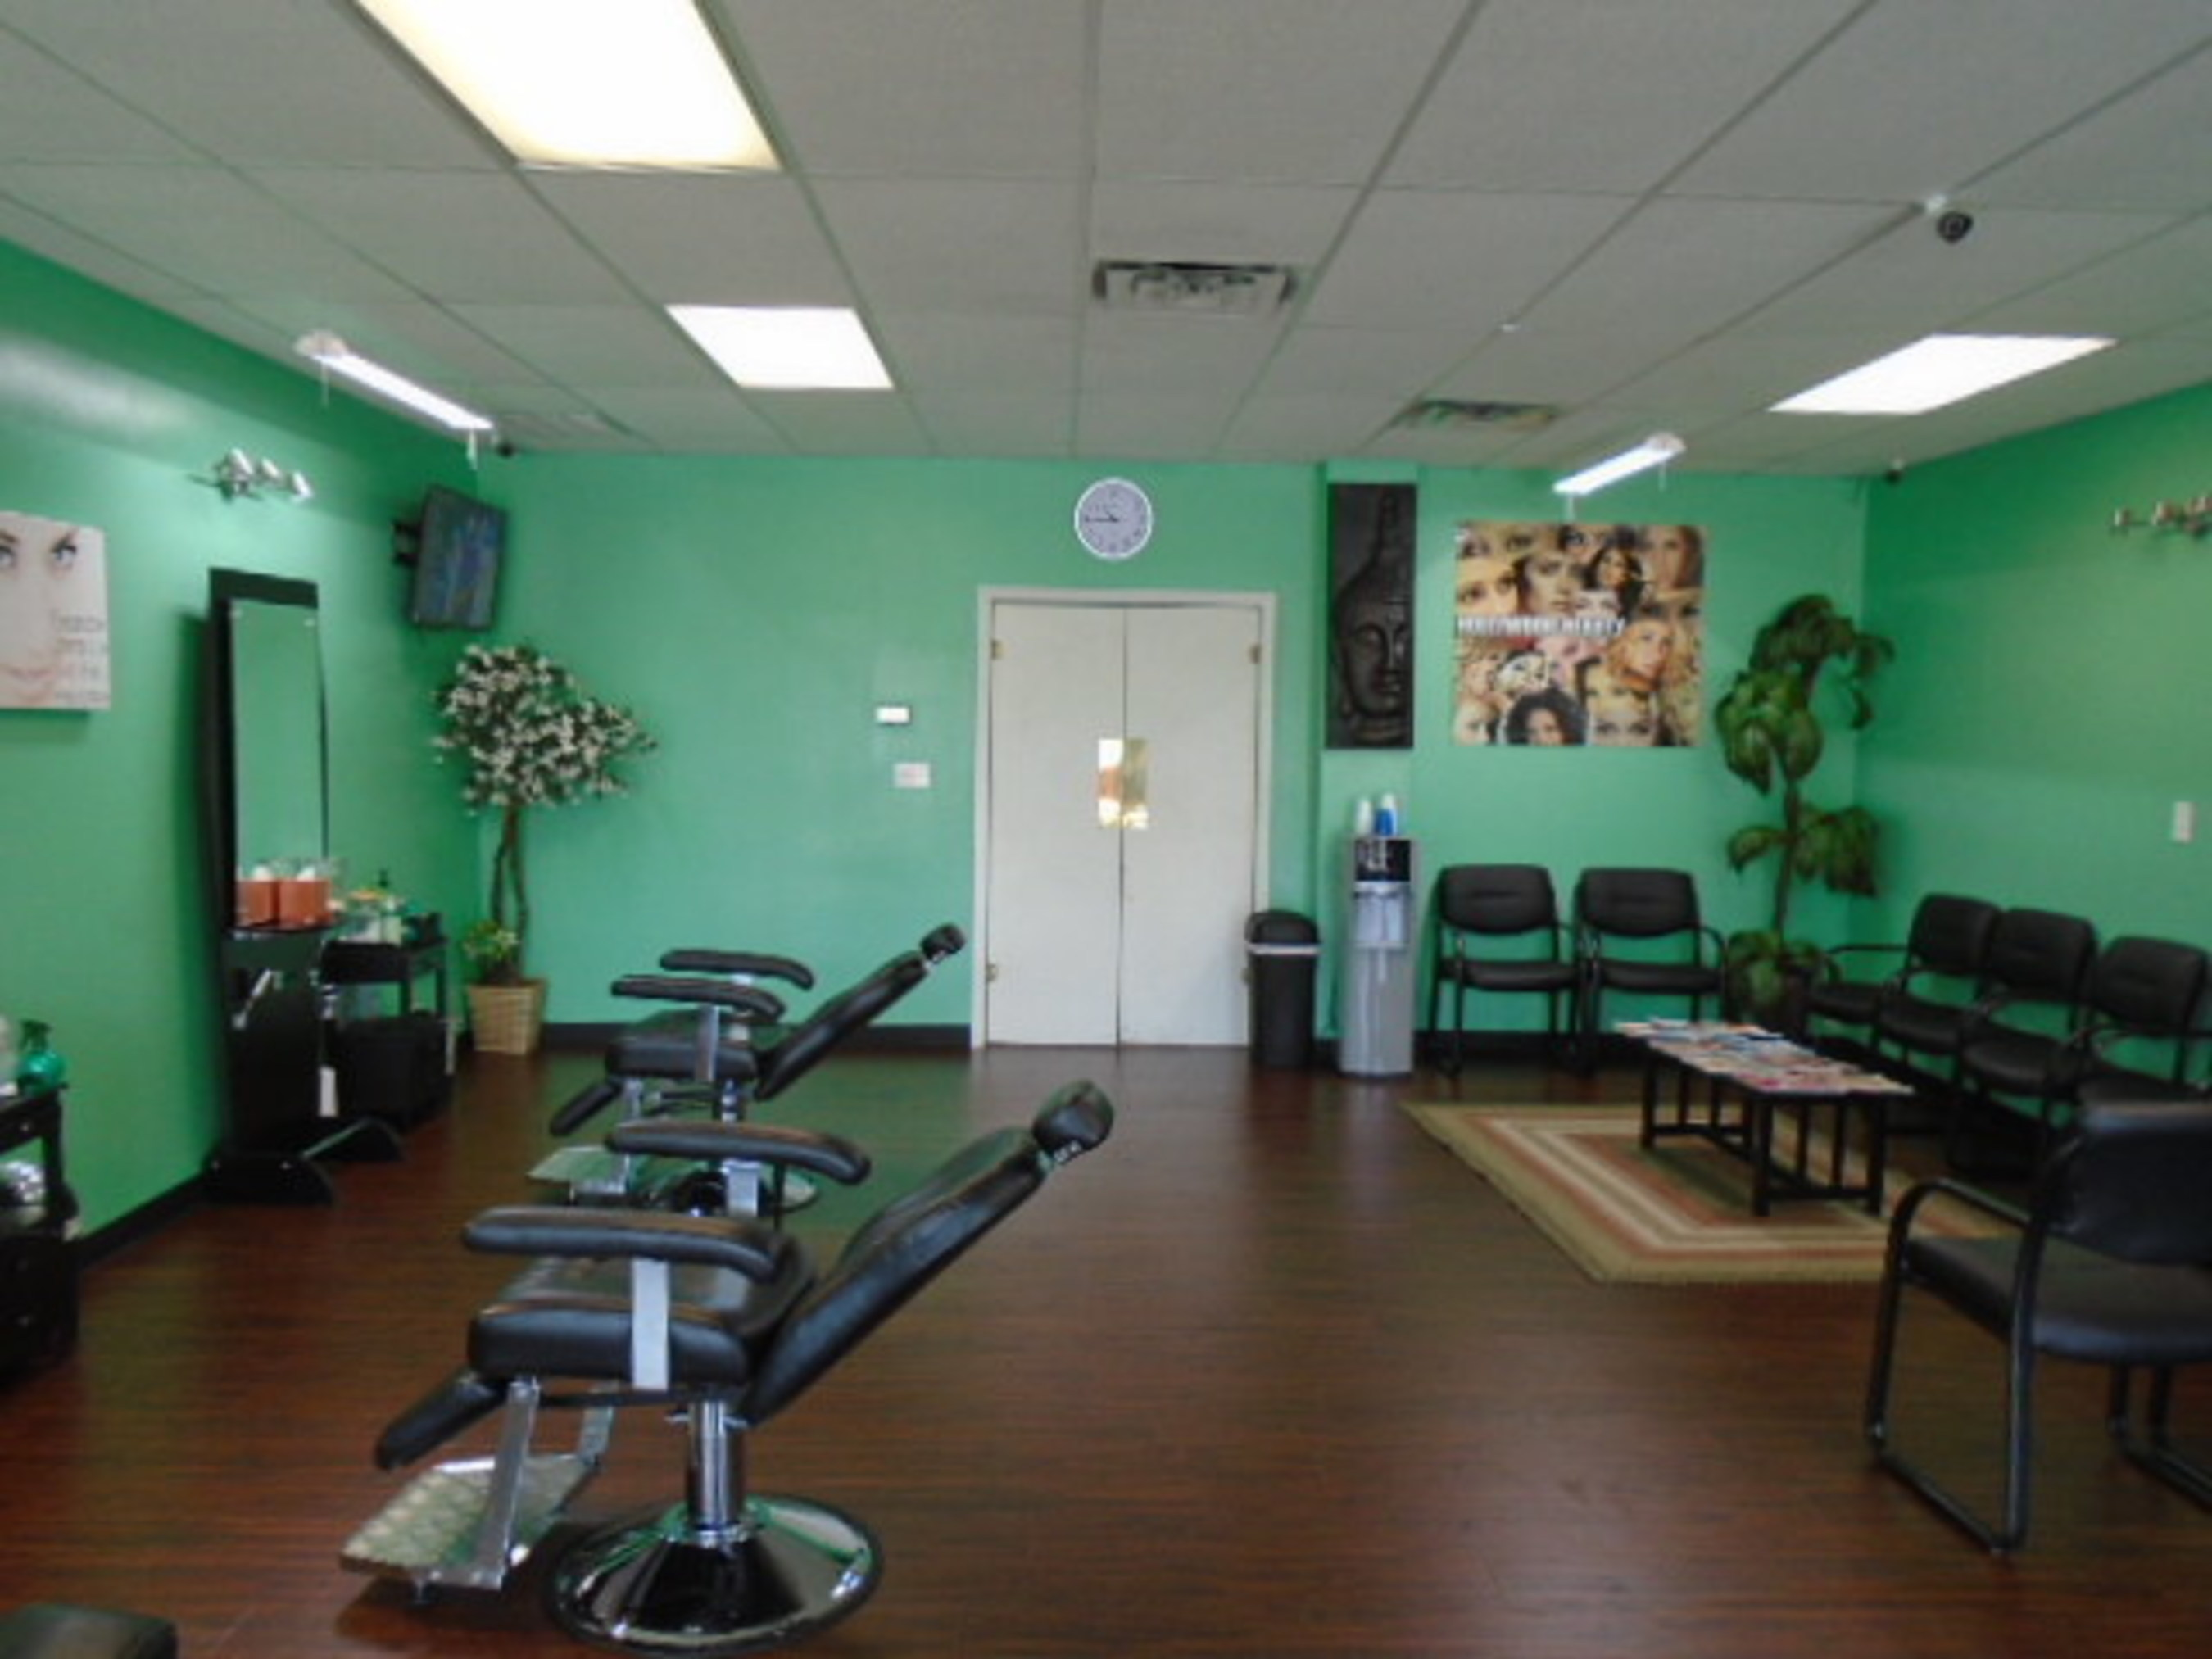 Hollywood Beauty Eyebrow Threading Opens New Store In Austin